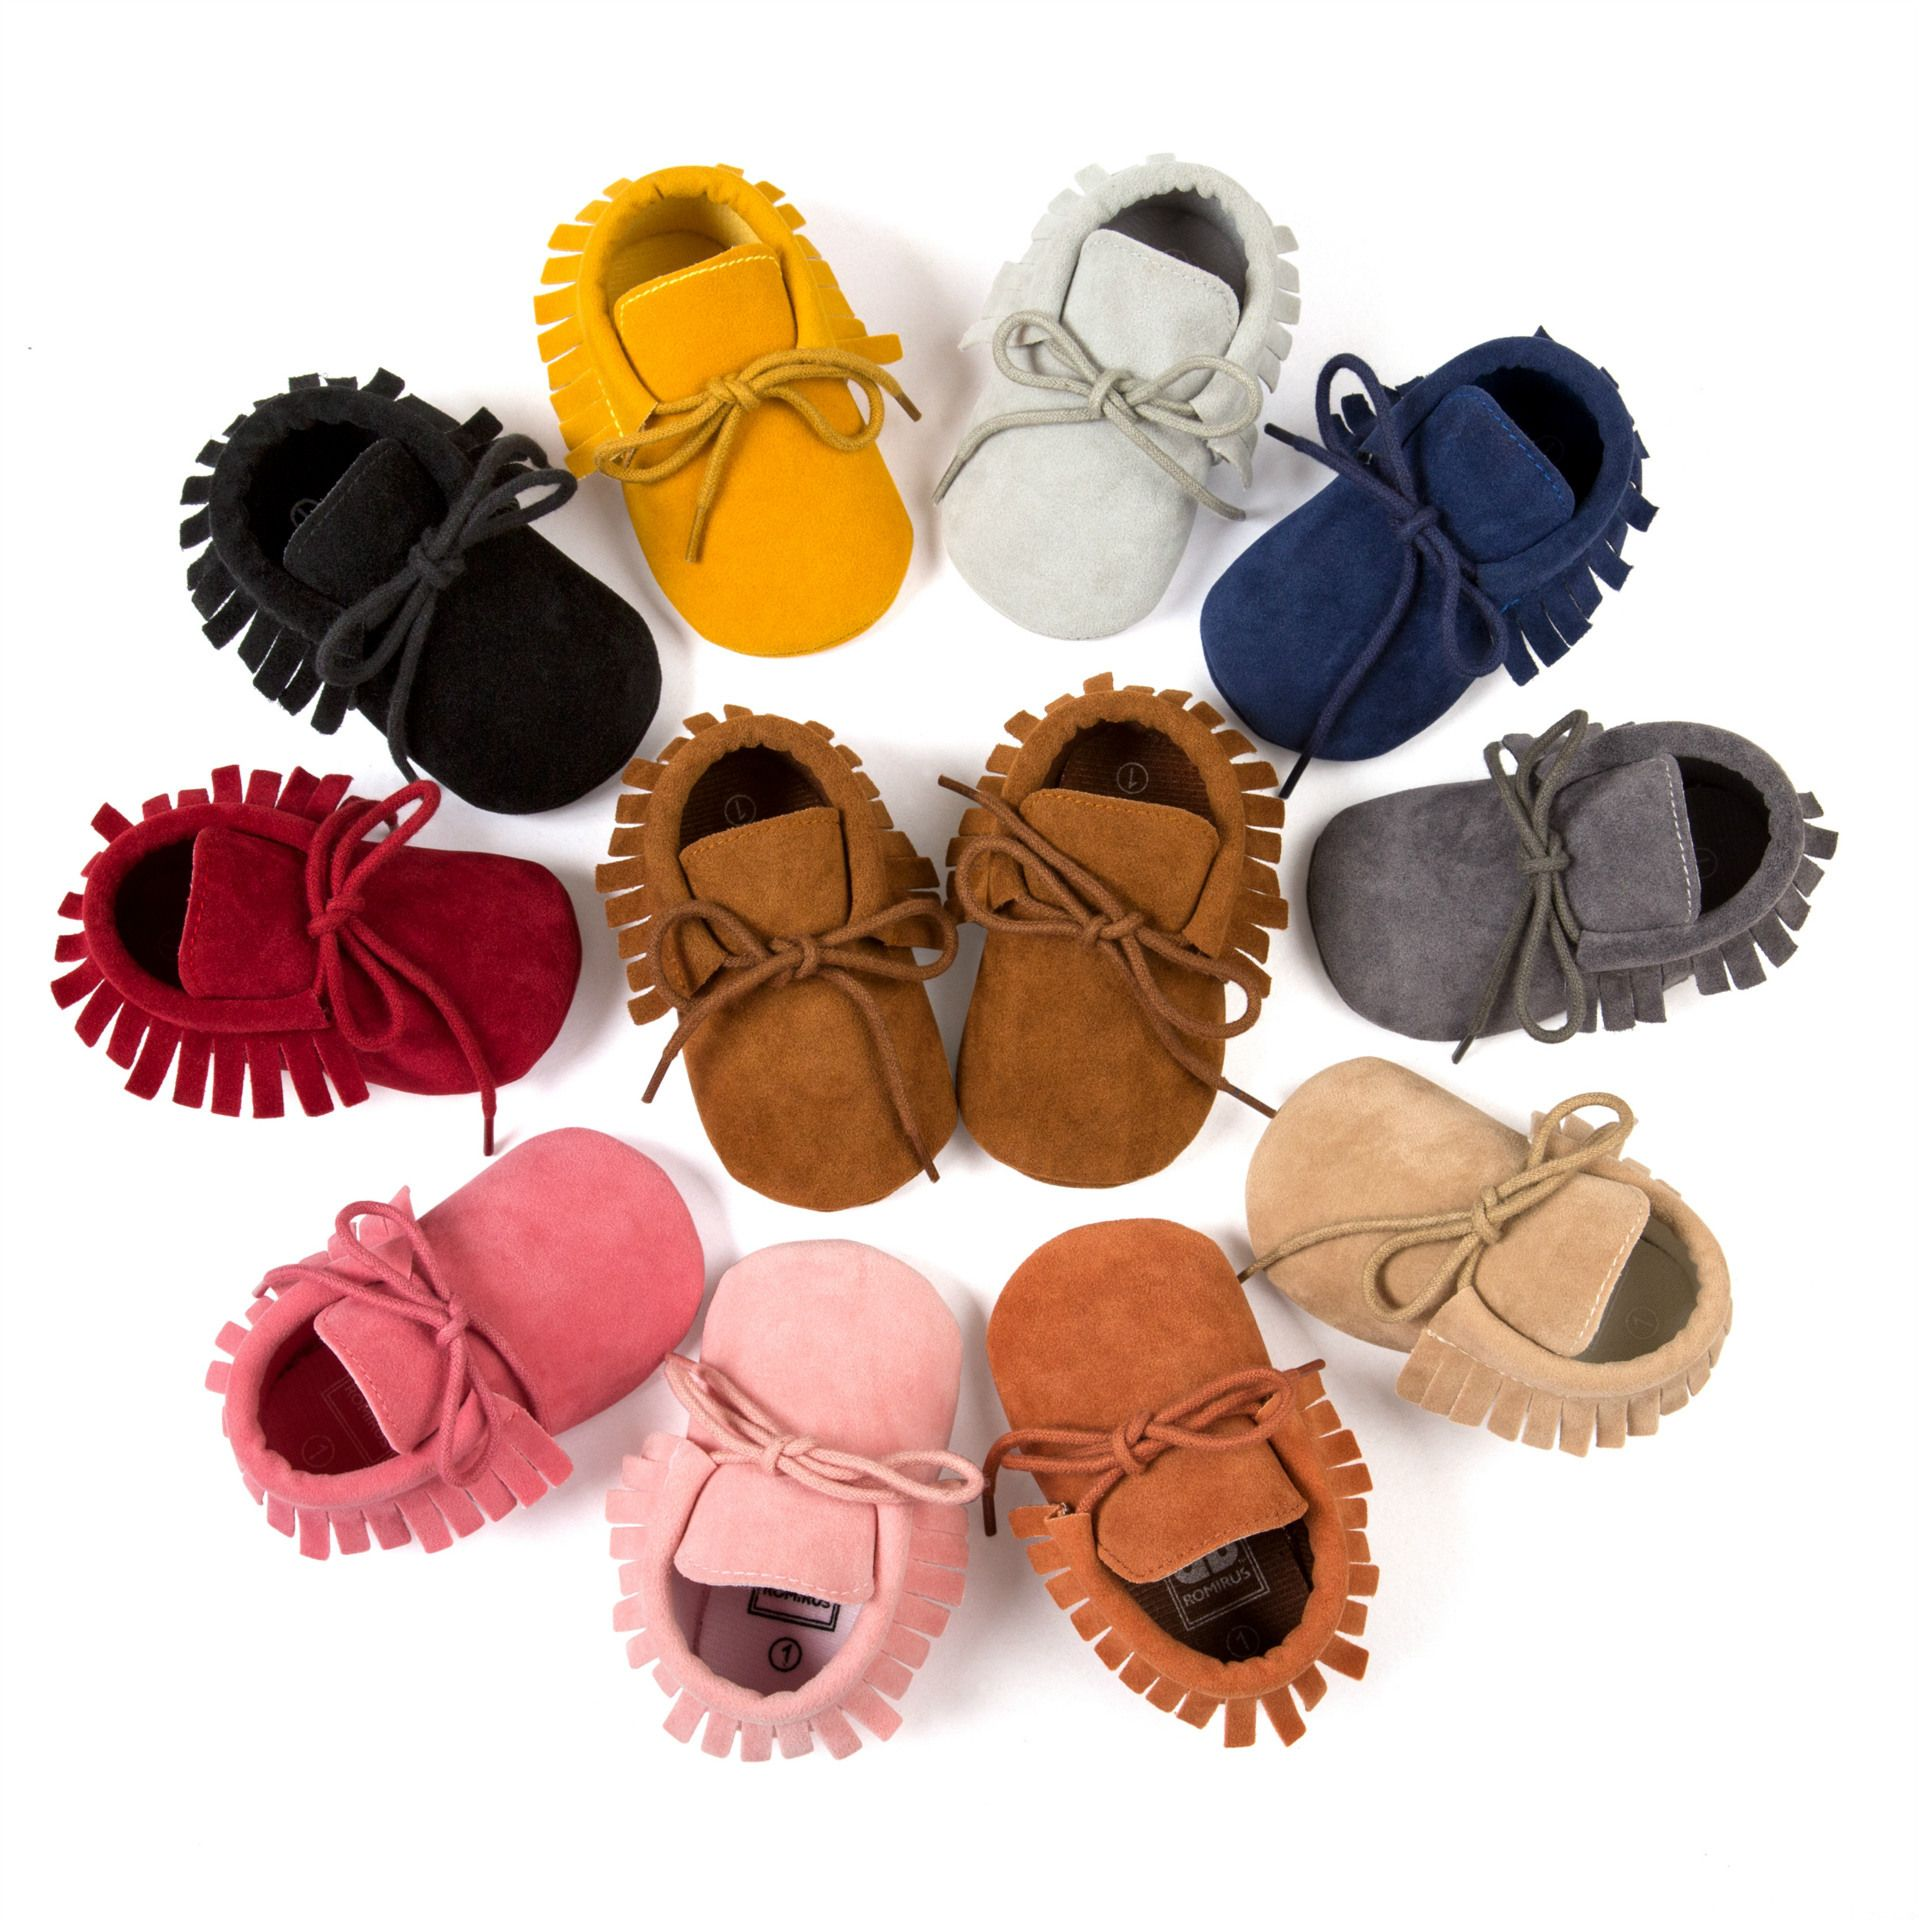 Click To Buy Matte Leather 2016 Lace Up Baby Boy Shoes Tassel Baby Moccasins Infants Toddler Girl S Baby Moccasin Shoes Baby Shoes Newborn Baby Moccasins